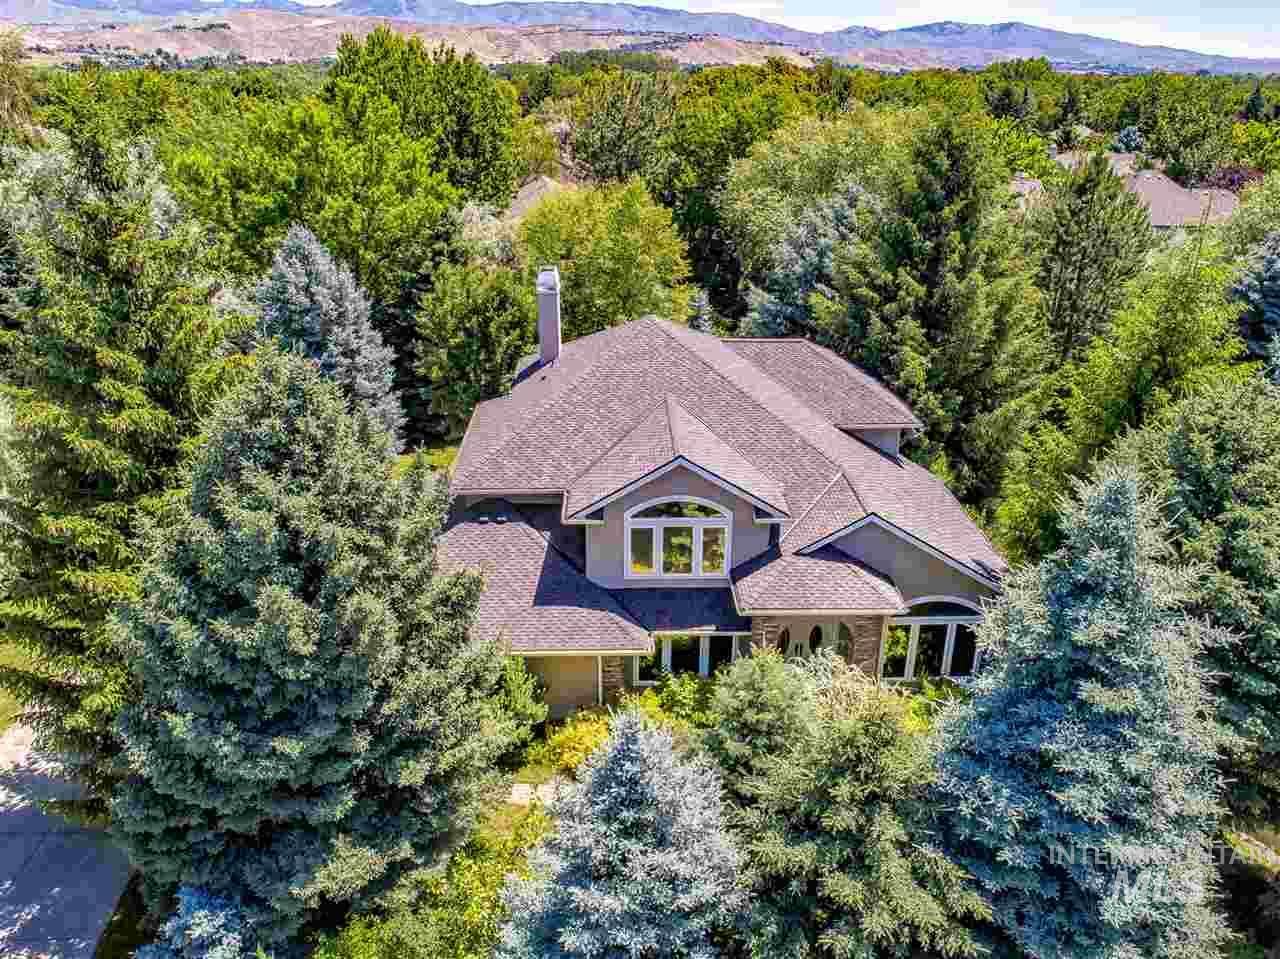 5090 N Lakemont Lane, Garden City, Idaho 83714, 4 Bedrooms, 2.5 Bathrooms, Residential For Sale, Price $659,000, 98734998